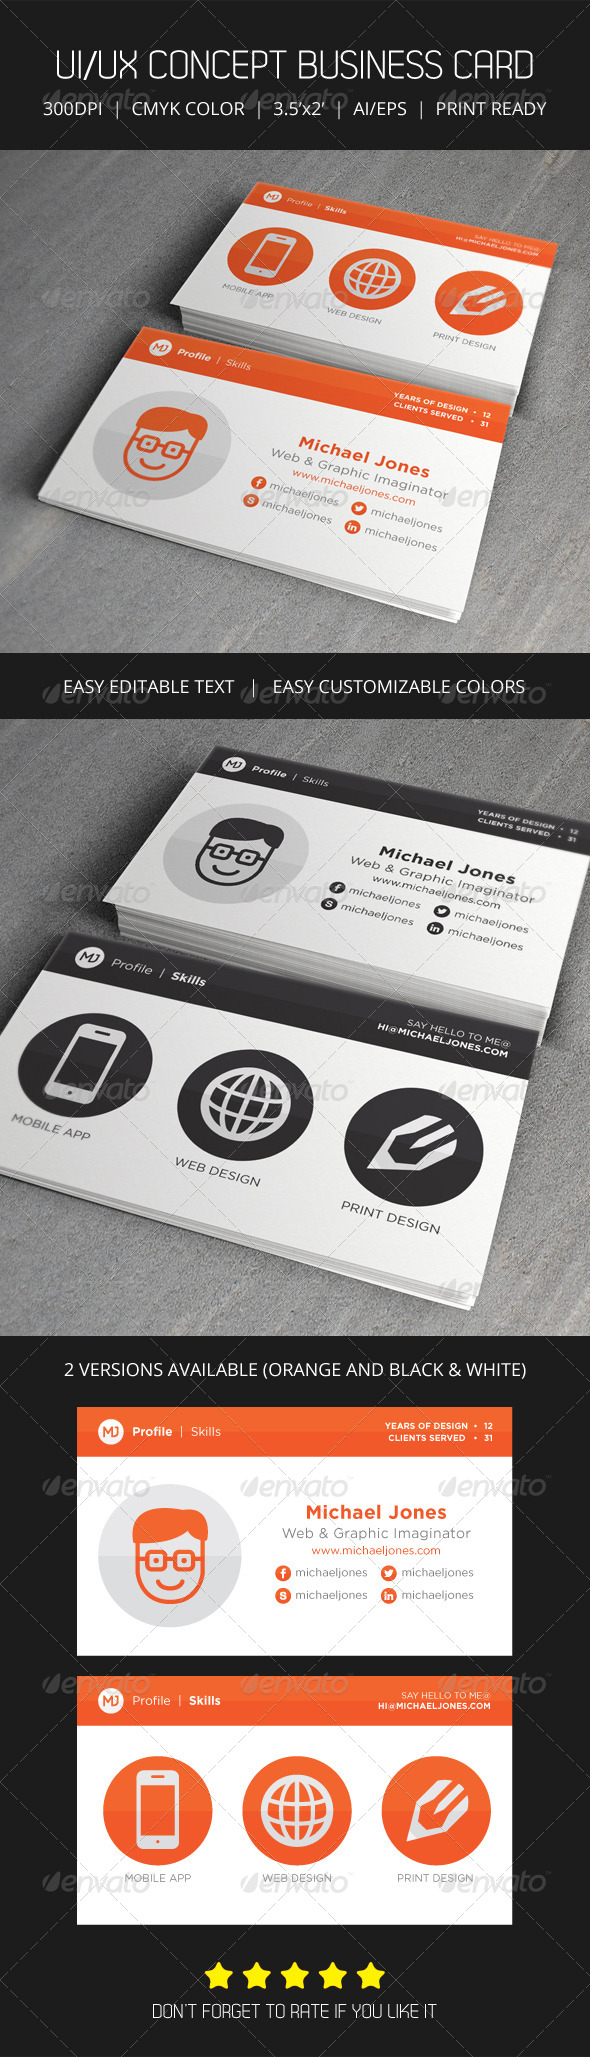 GraphicRiver UI UX Style Business Card 4839432